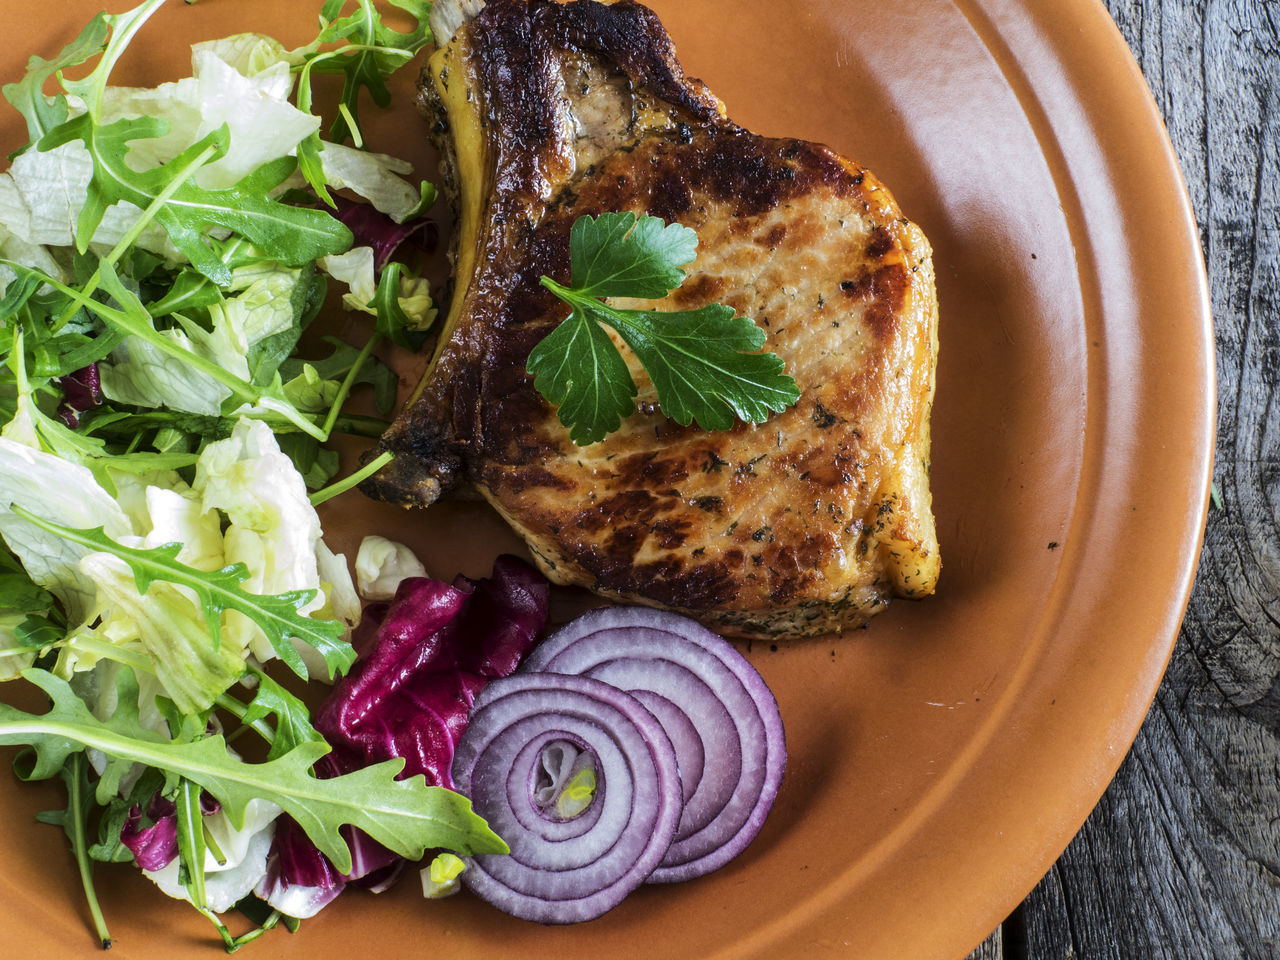 Roasted pork chop on a plate with a green salad, red onion on an old wooden weathered table Broccoli Chop Close-up Day Food Food And Drink Freshness Green Healthy Eating Leaf No People Old Onion Plate Pork Ready-to-eat Relaxing Roasted Salad Serving Size Table Weathered Wooden